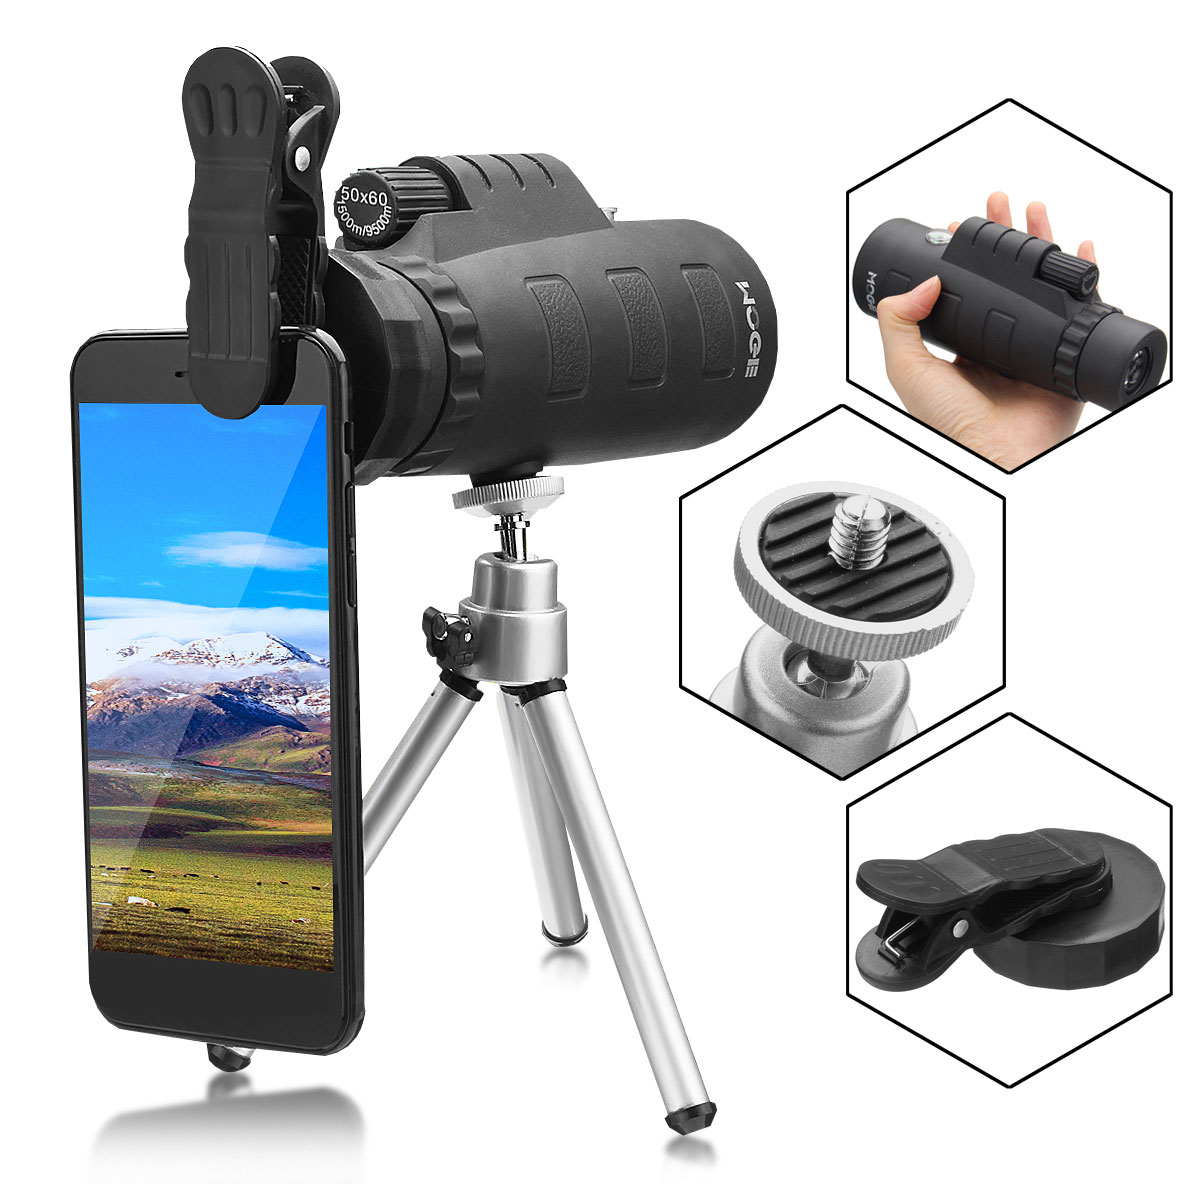 50X Zoom Universal Outdoor Mobile Phone Cellphone Camera Clip-On Monocular Telescope Optical Lens + Tripod + Clip Phone Accessories